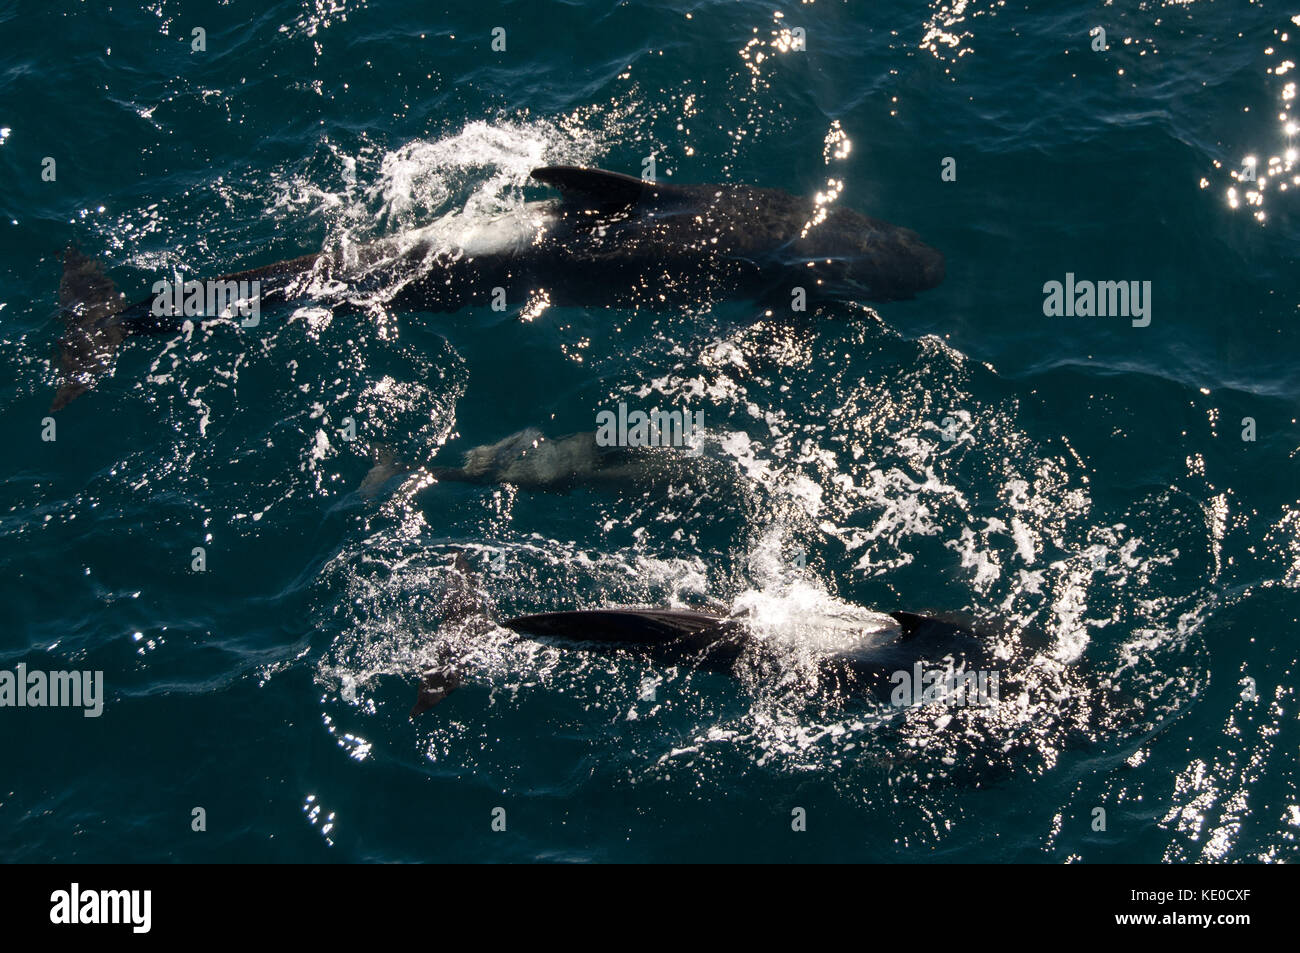 Long-finned Pilot Whales - Stock Image